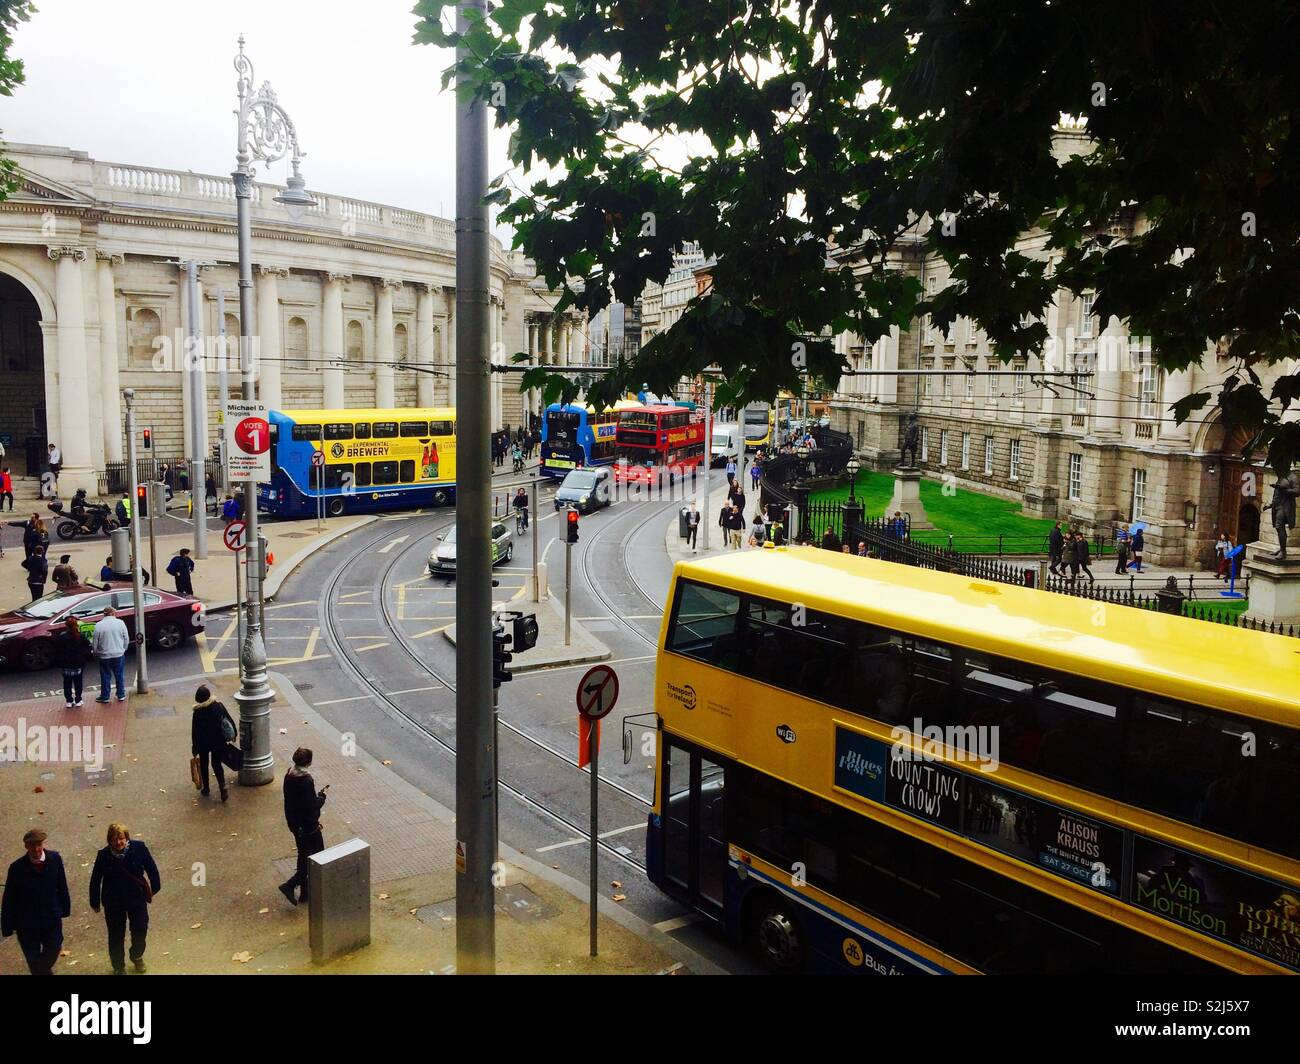 8907fcf3e03a1 Looking down onto a busy street or road in Dublin city centre with busses  and people